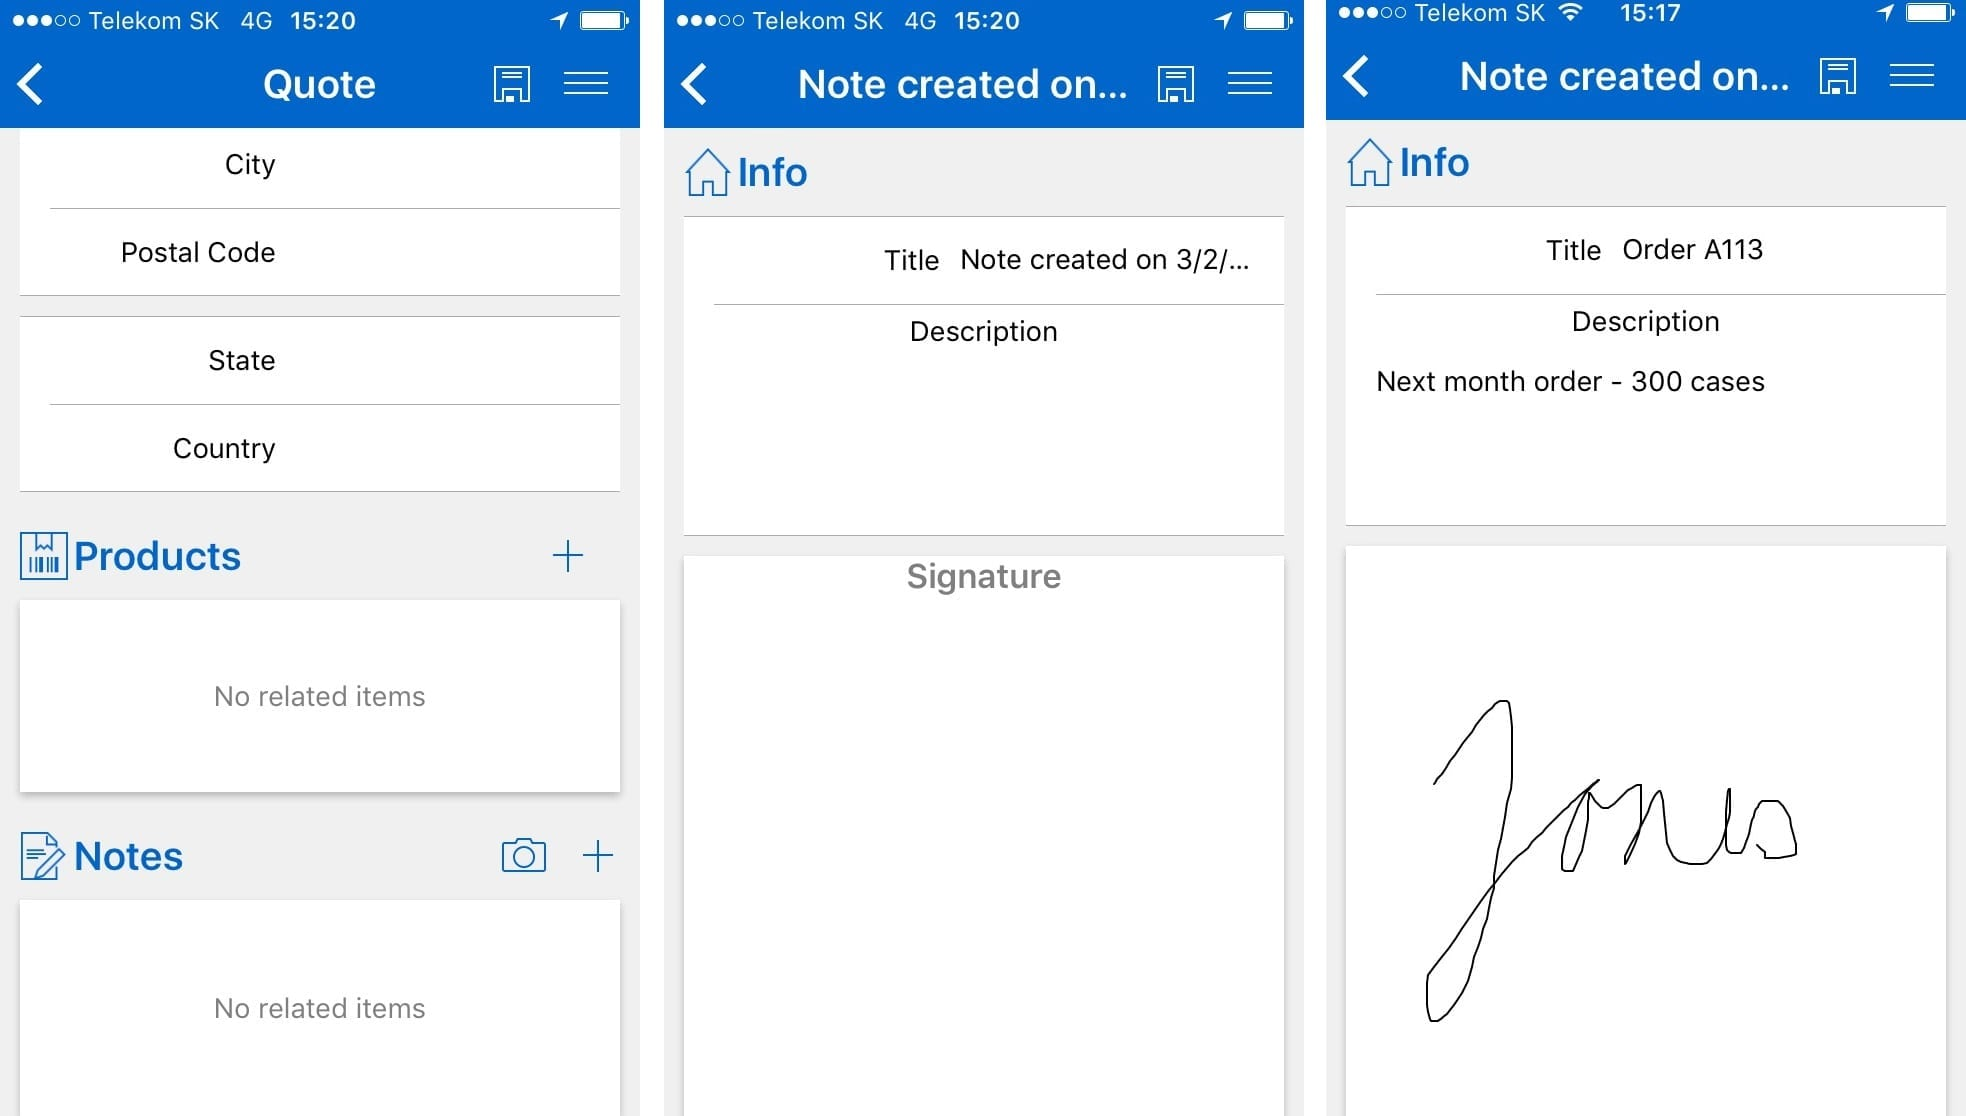 Signature in Resco Mobile CRM client for Microsoft Dynaimics CRM